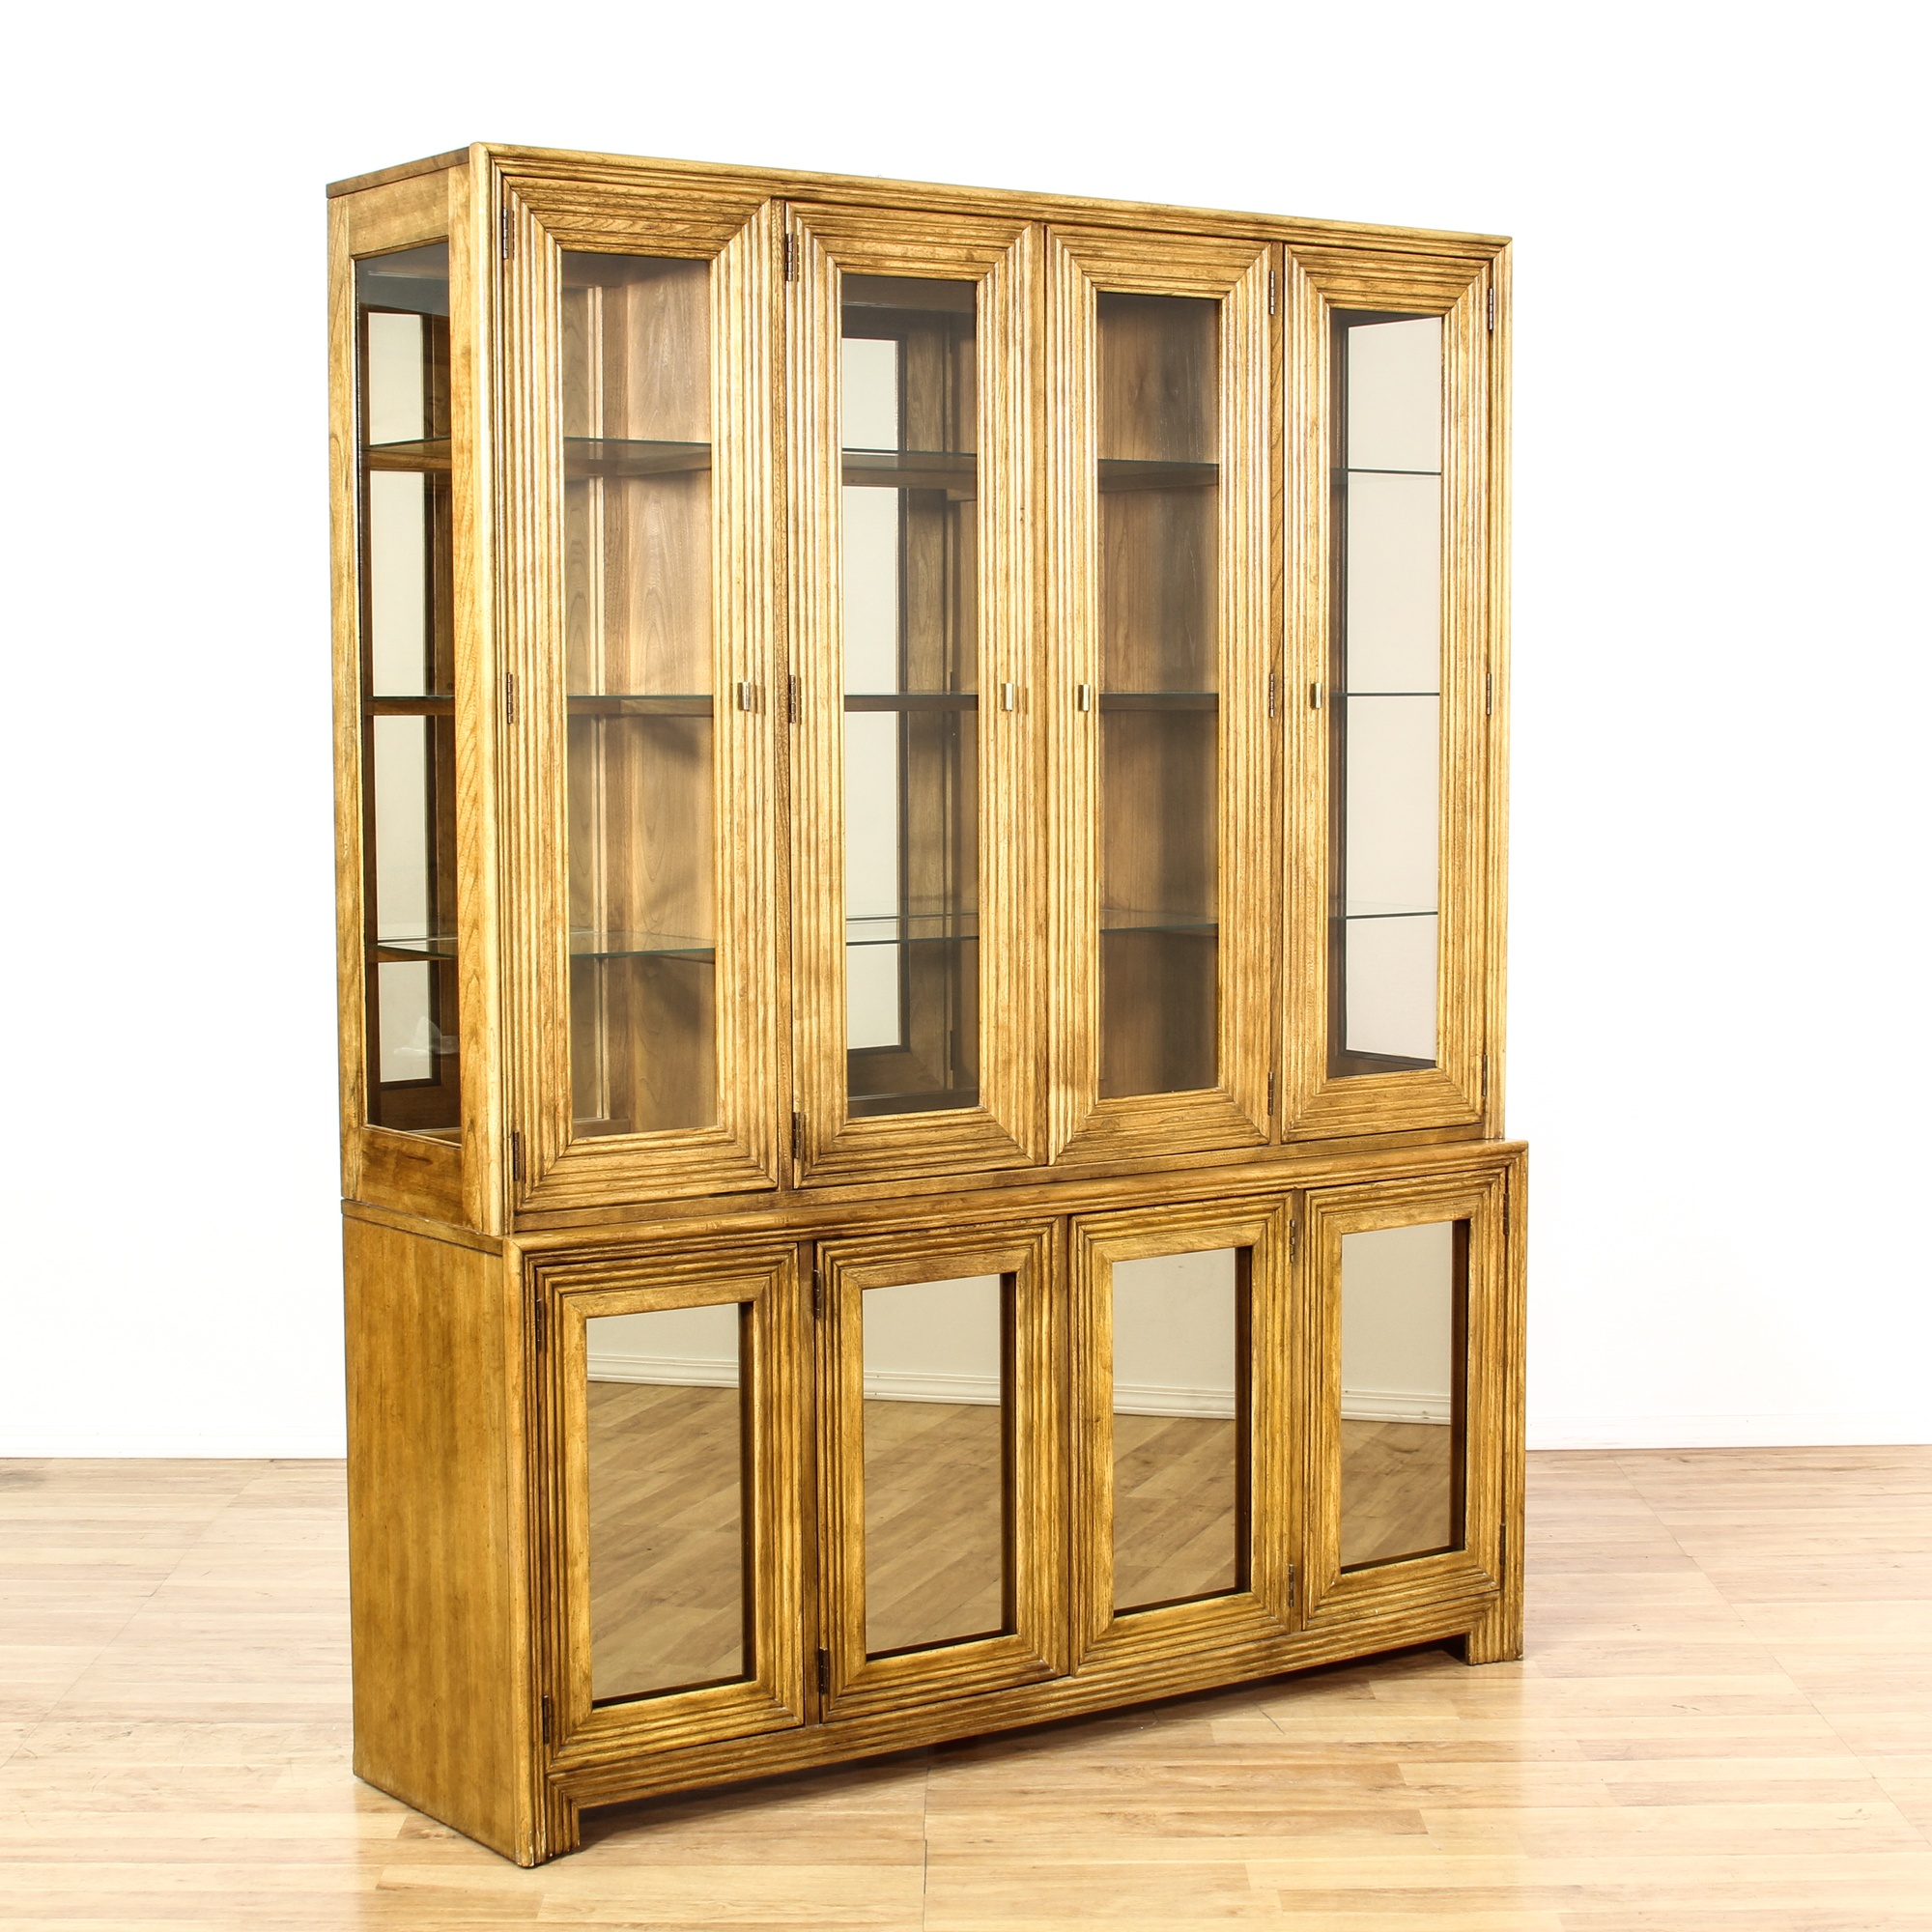 #B57C16 Glass Front Fluted Wood China Cabinet Display Case  with 2000x2000 px of Brand New Glass Display Cases Los Angeles 20002000 pic @ avoidforclosure.info